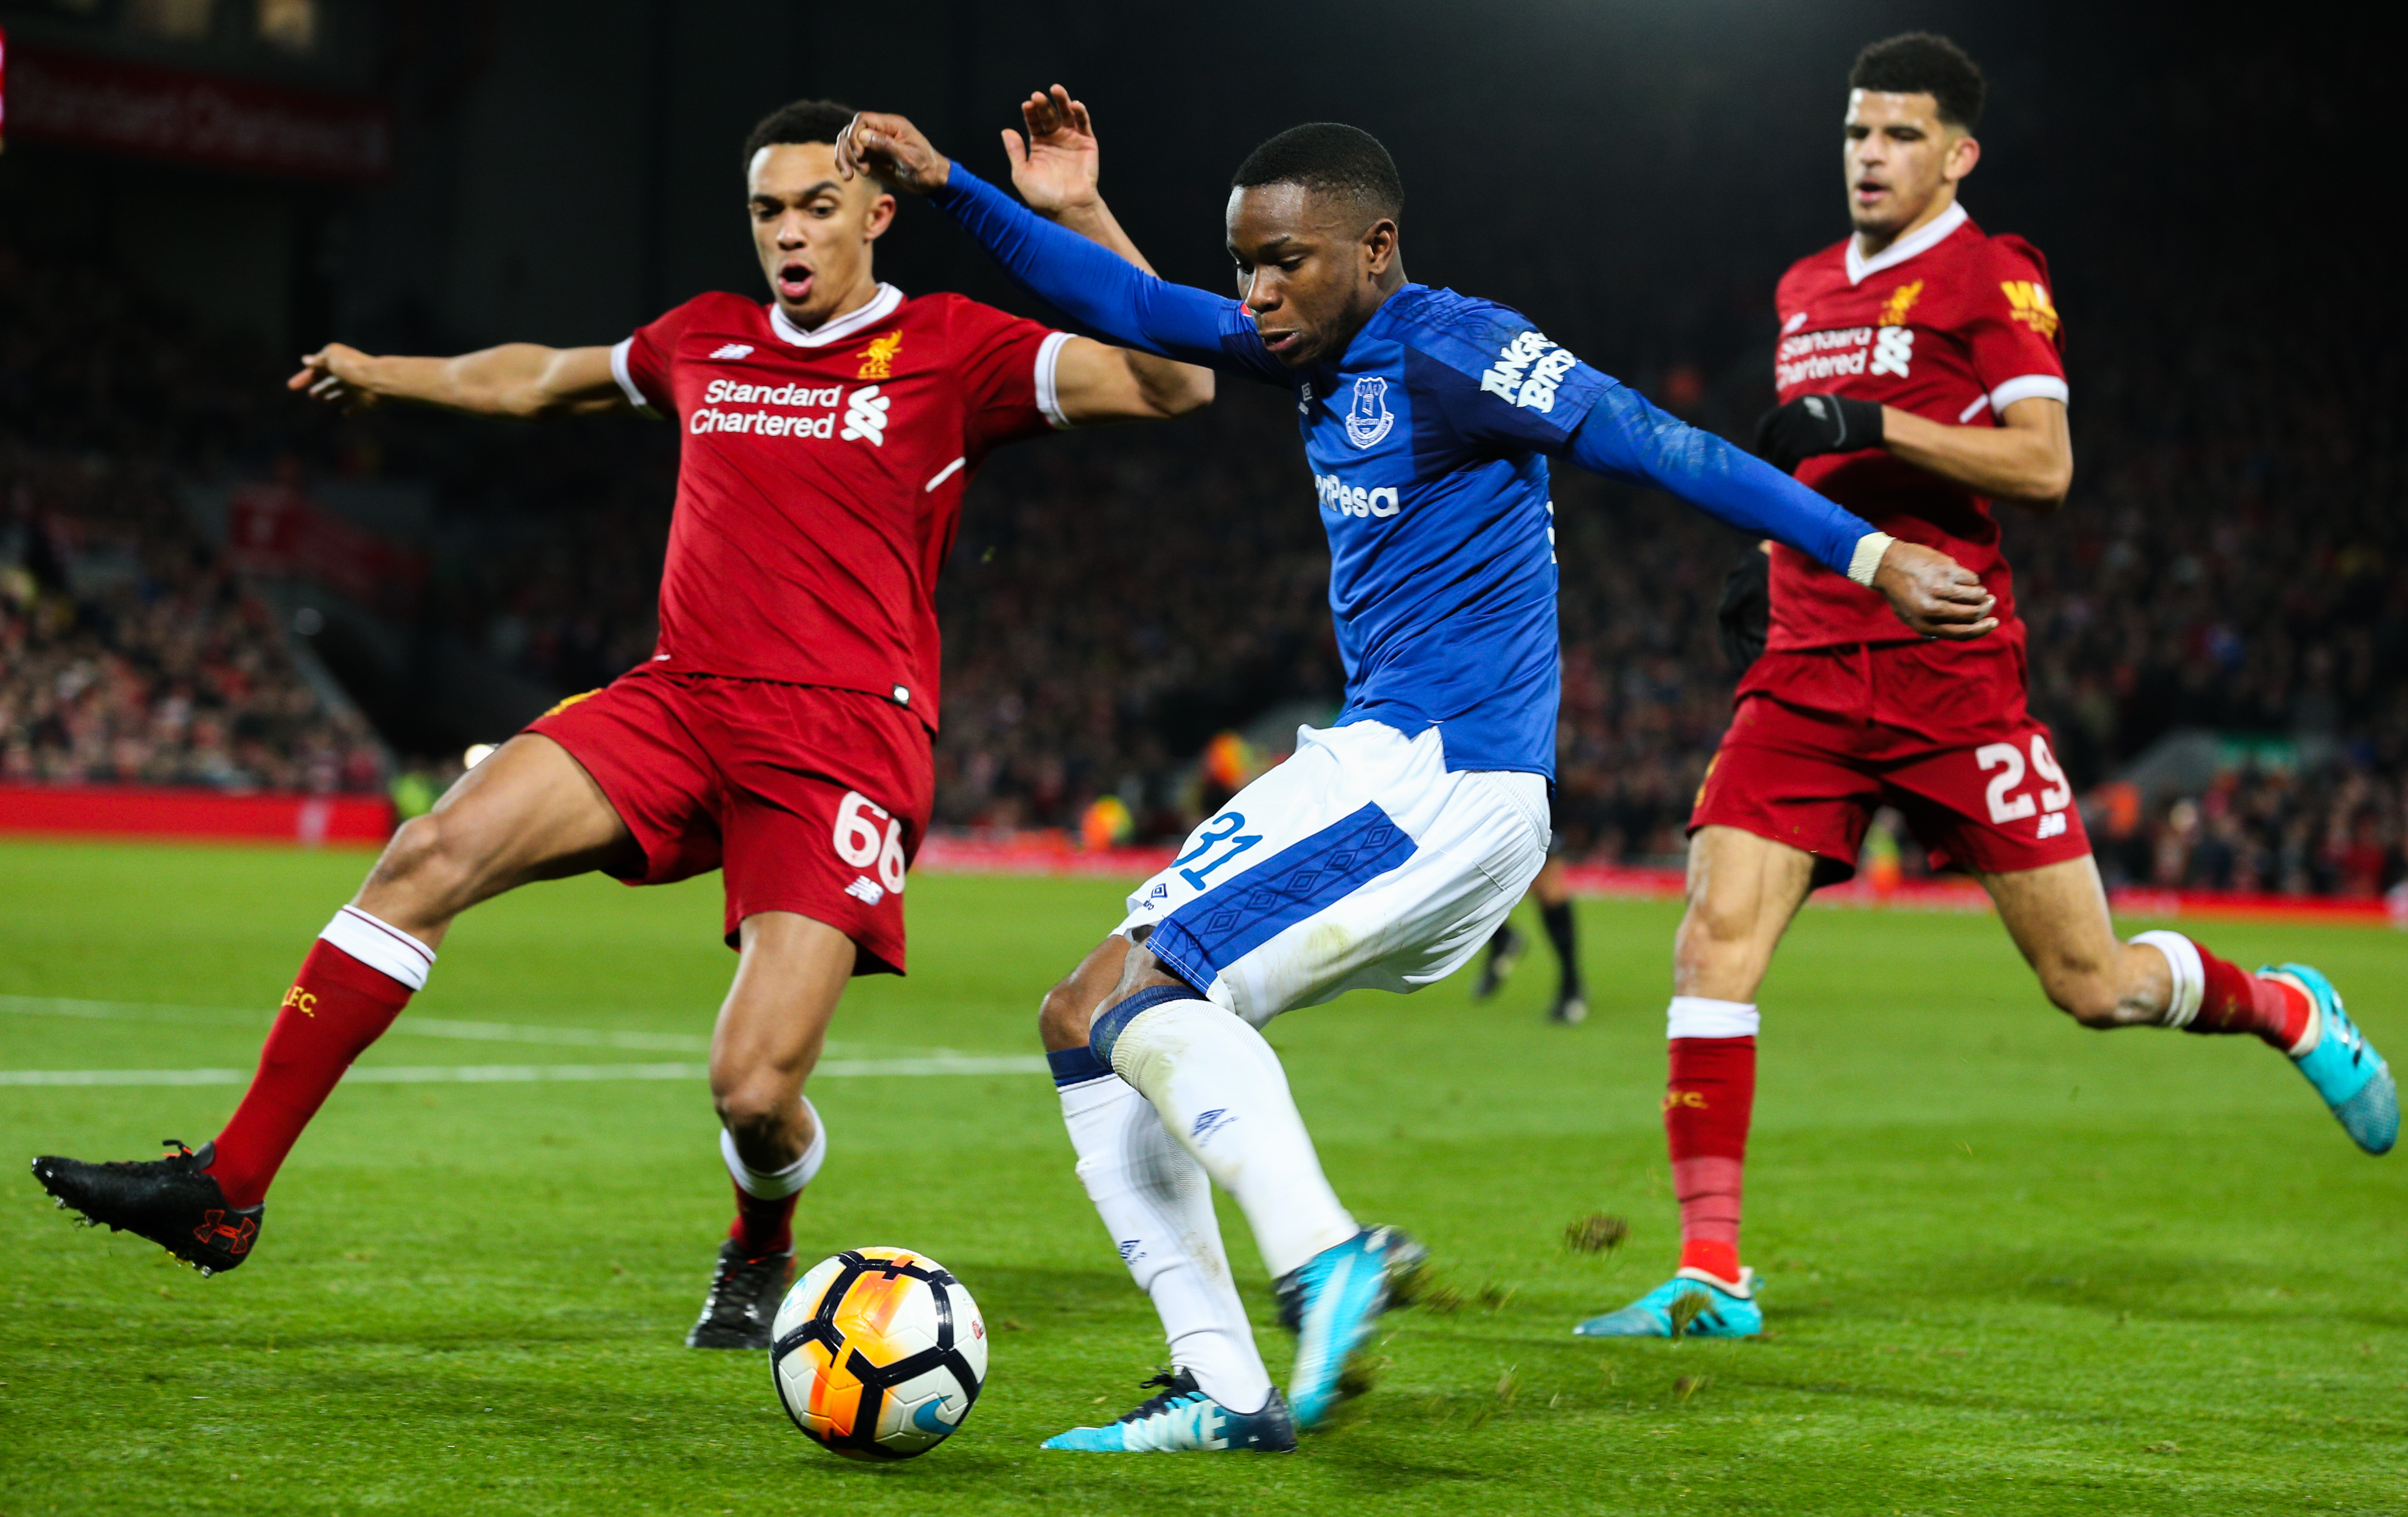 Liverpool v Everton - The Emirates FA Cup Third Round